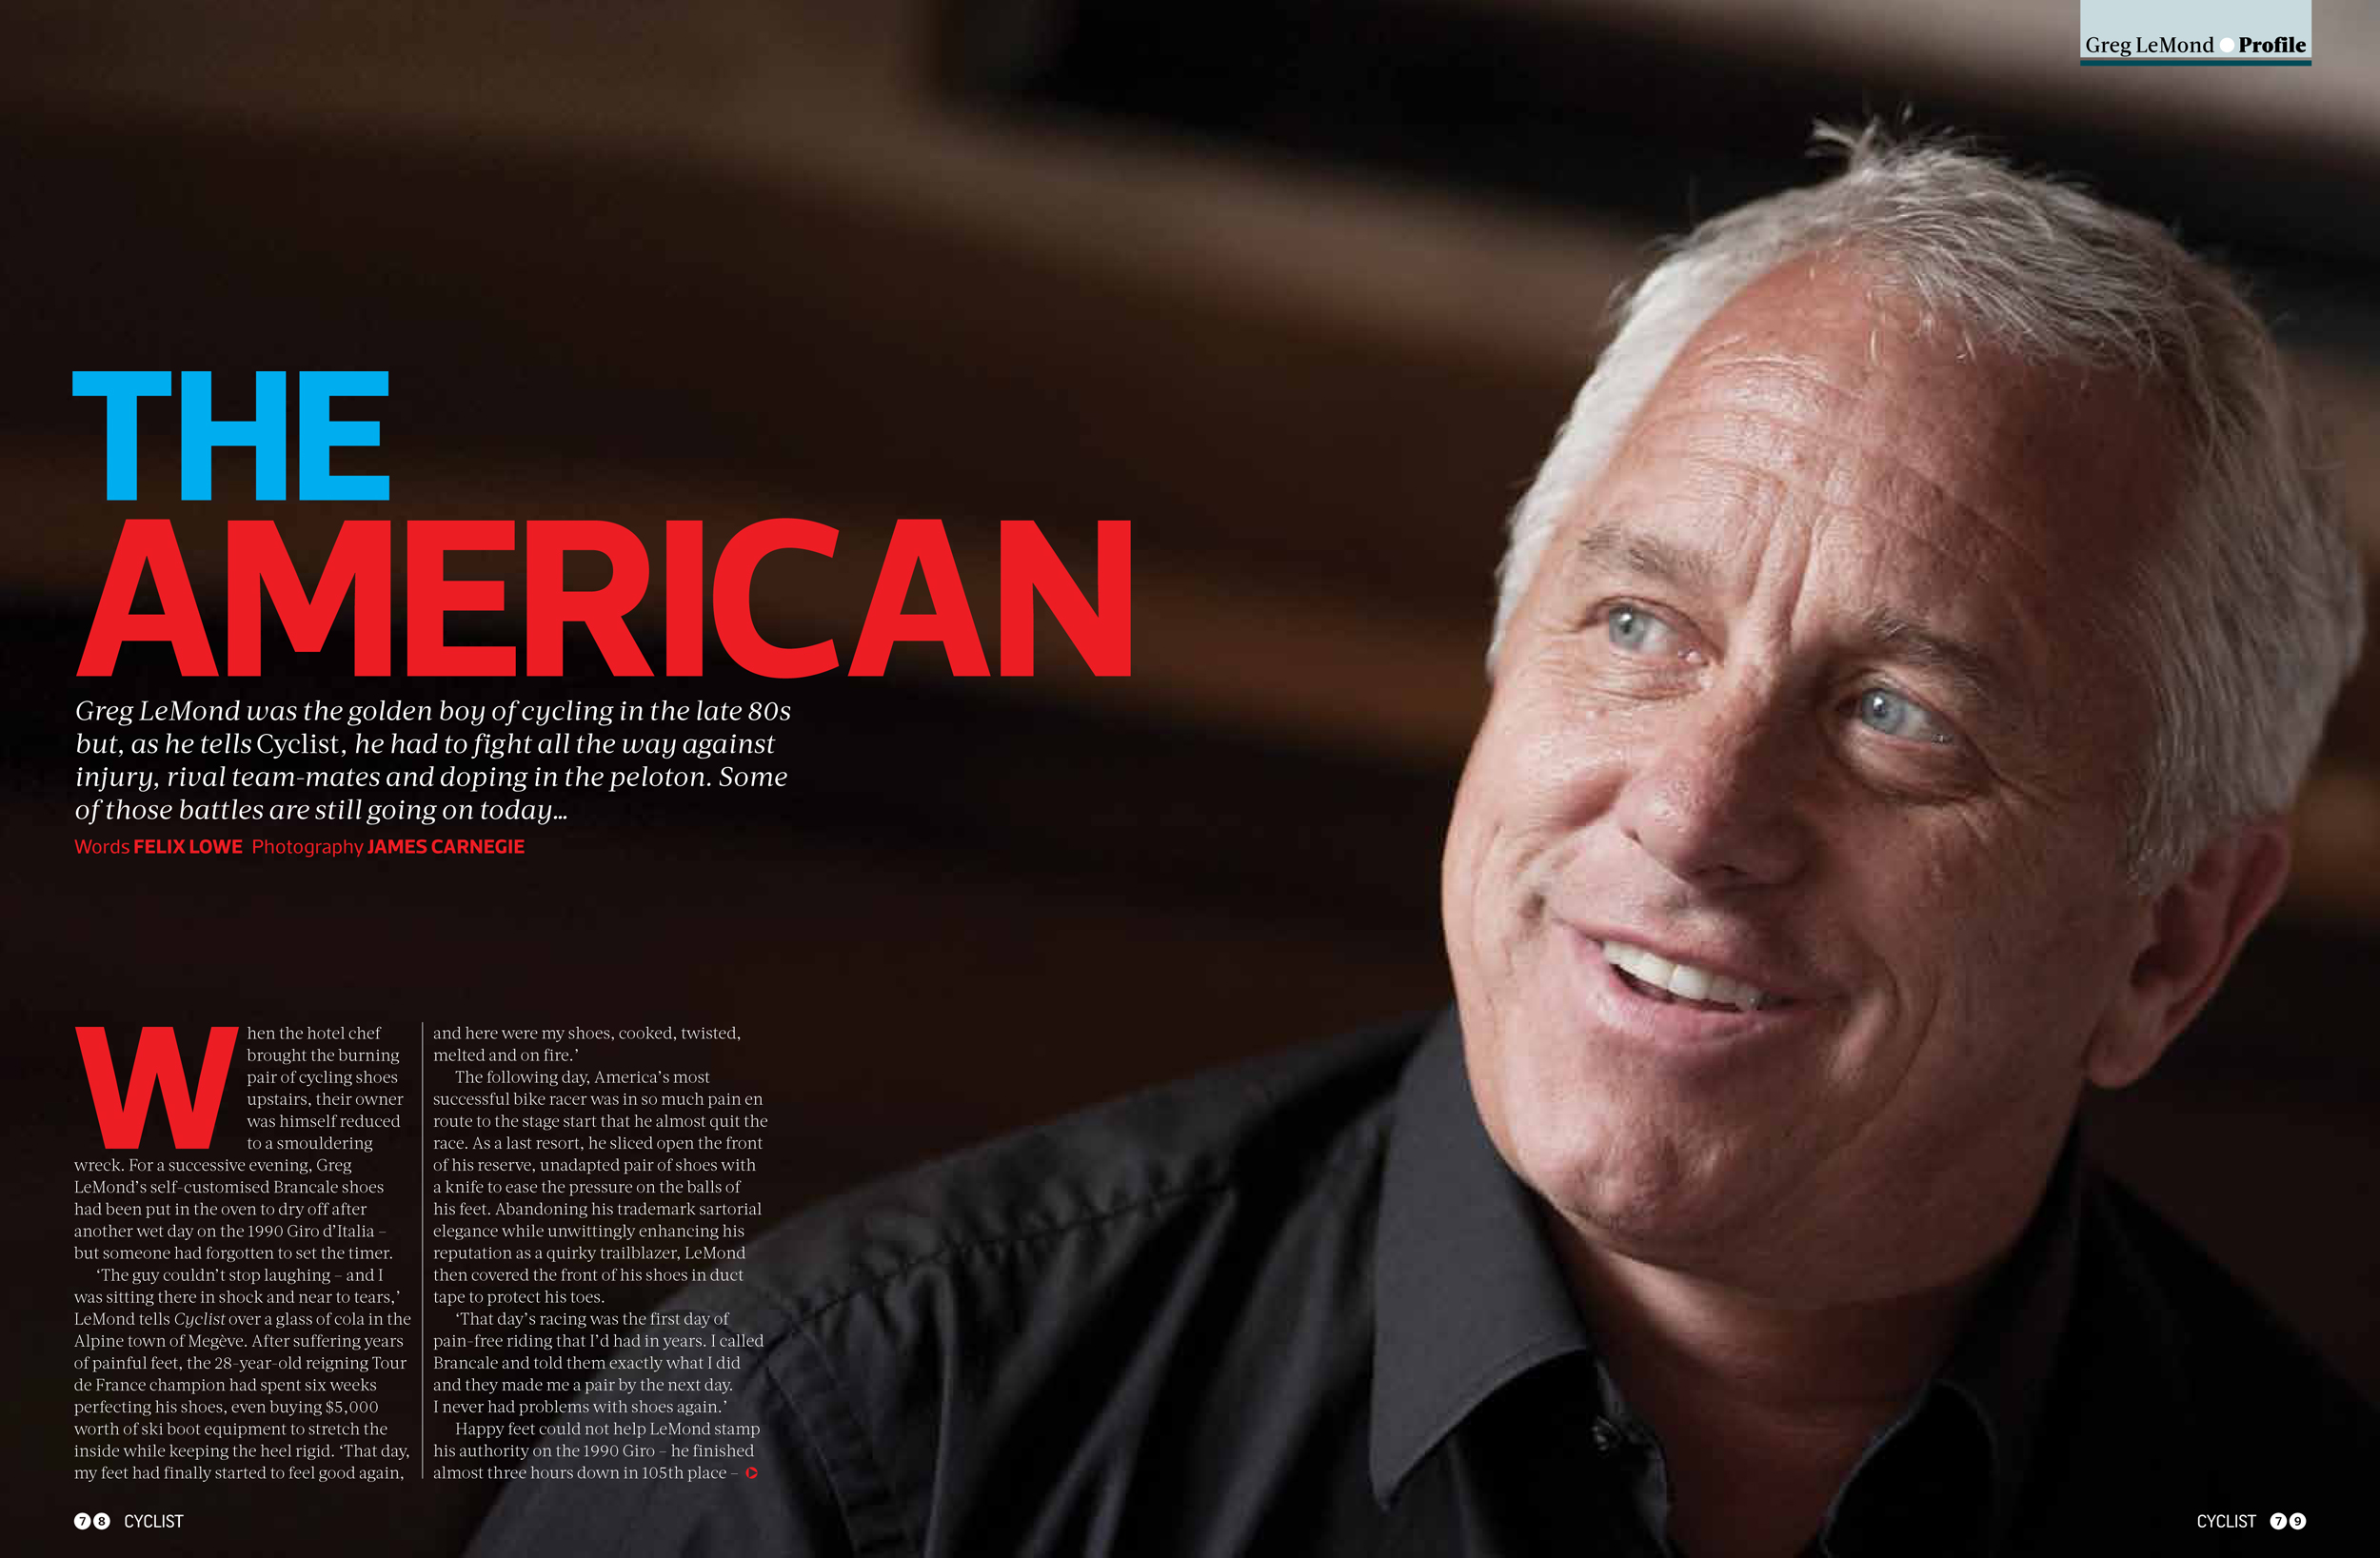 The American for Cyclist magazine